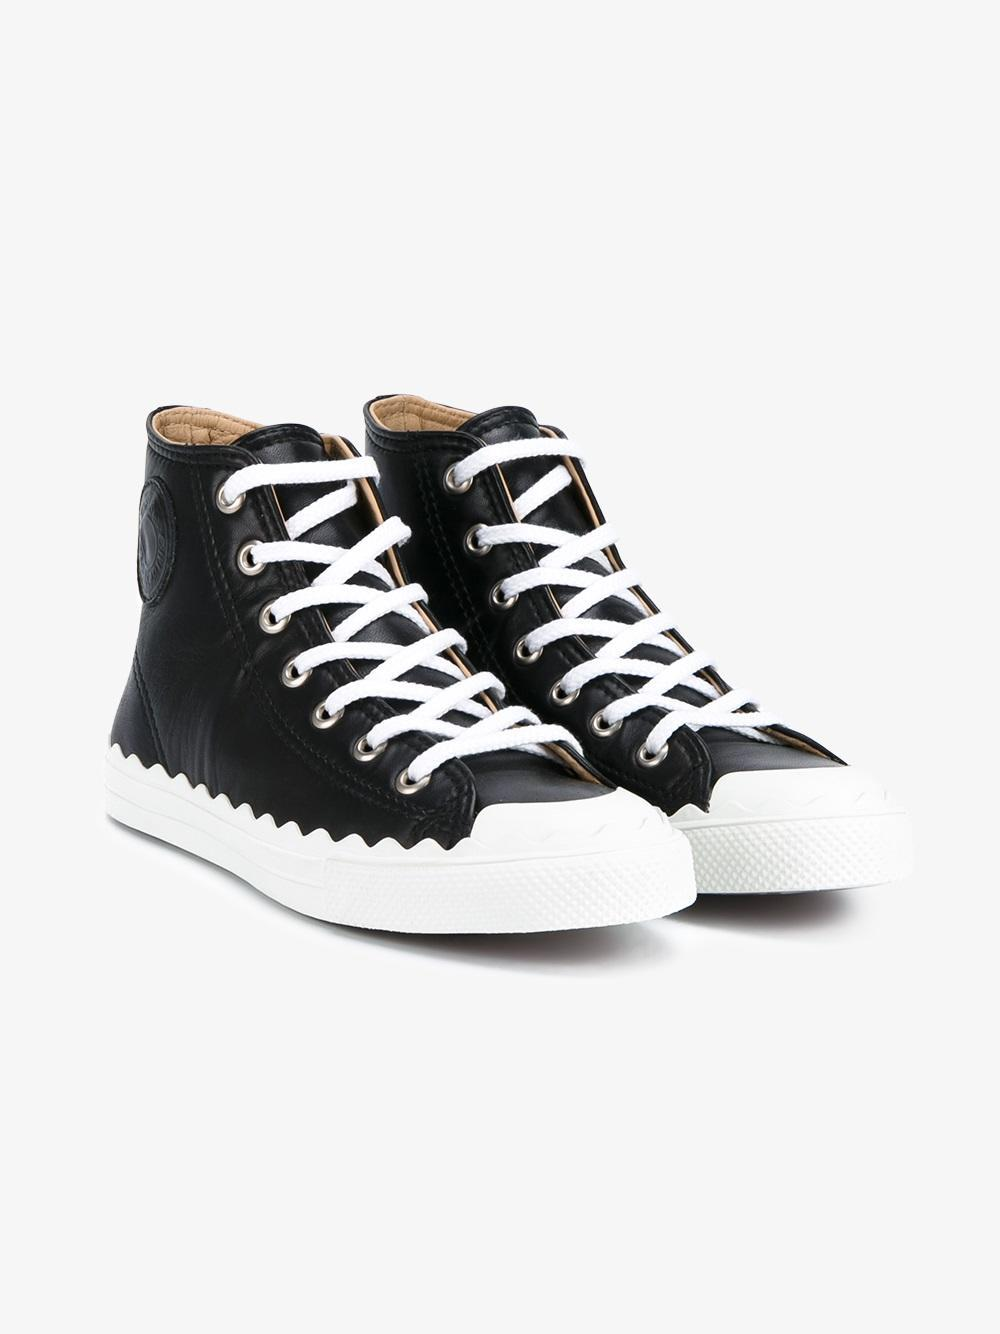 chlo kyle leather hi top sneakers lyst. Black Bedroom Furniture Sets. Home Design Ideas